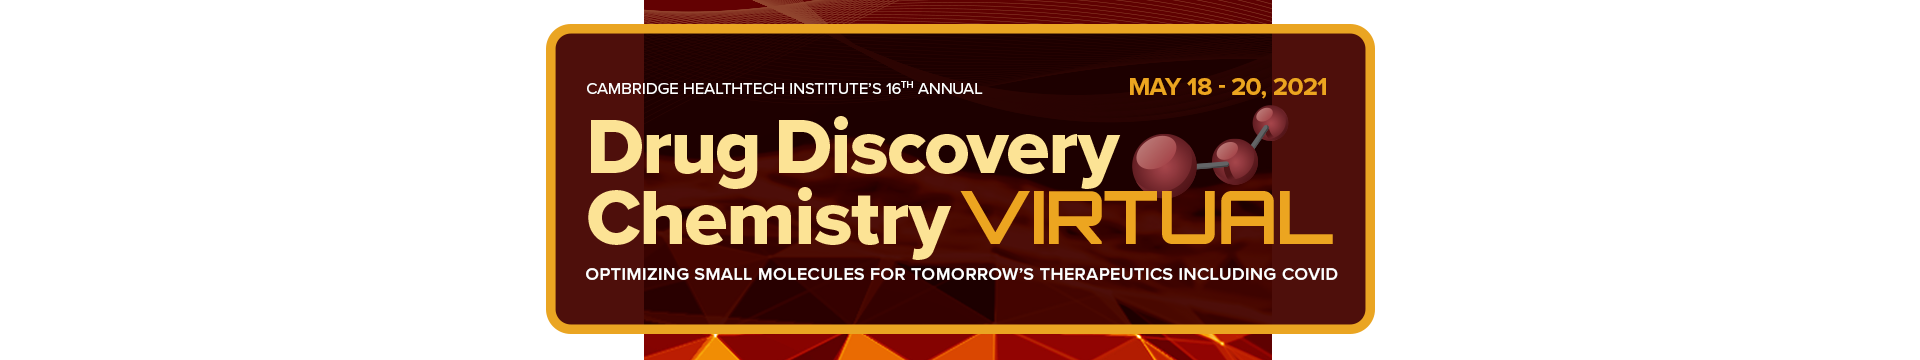 Drug Discovery Chemistry Banner Image